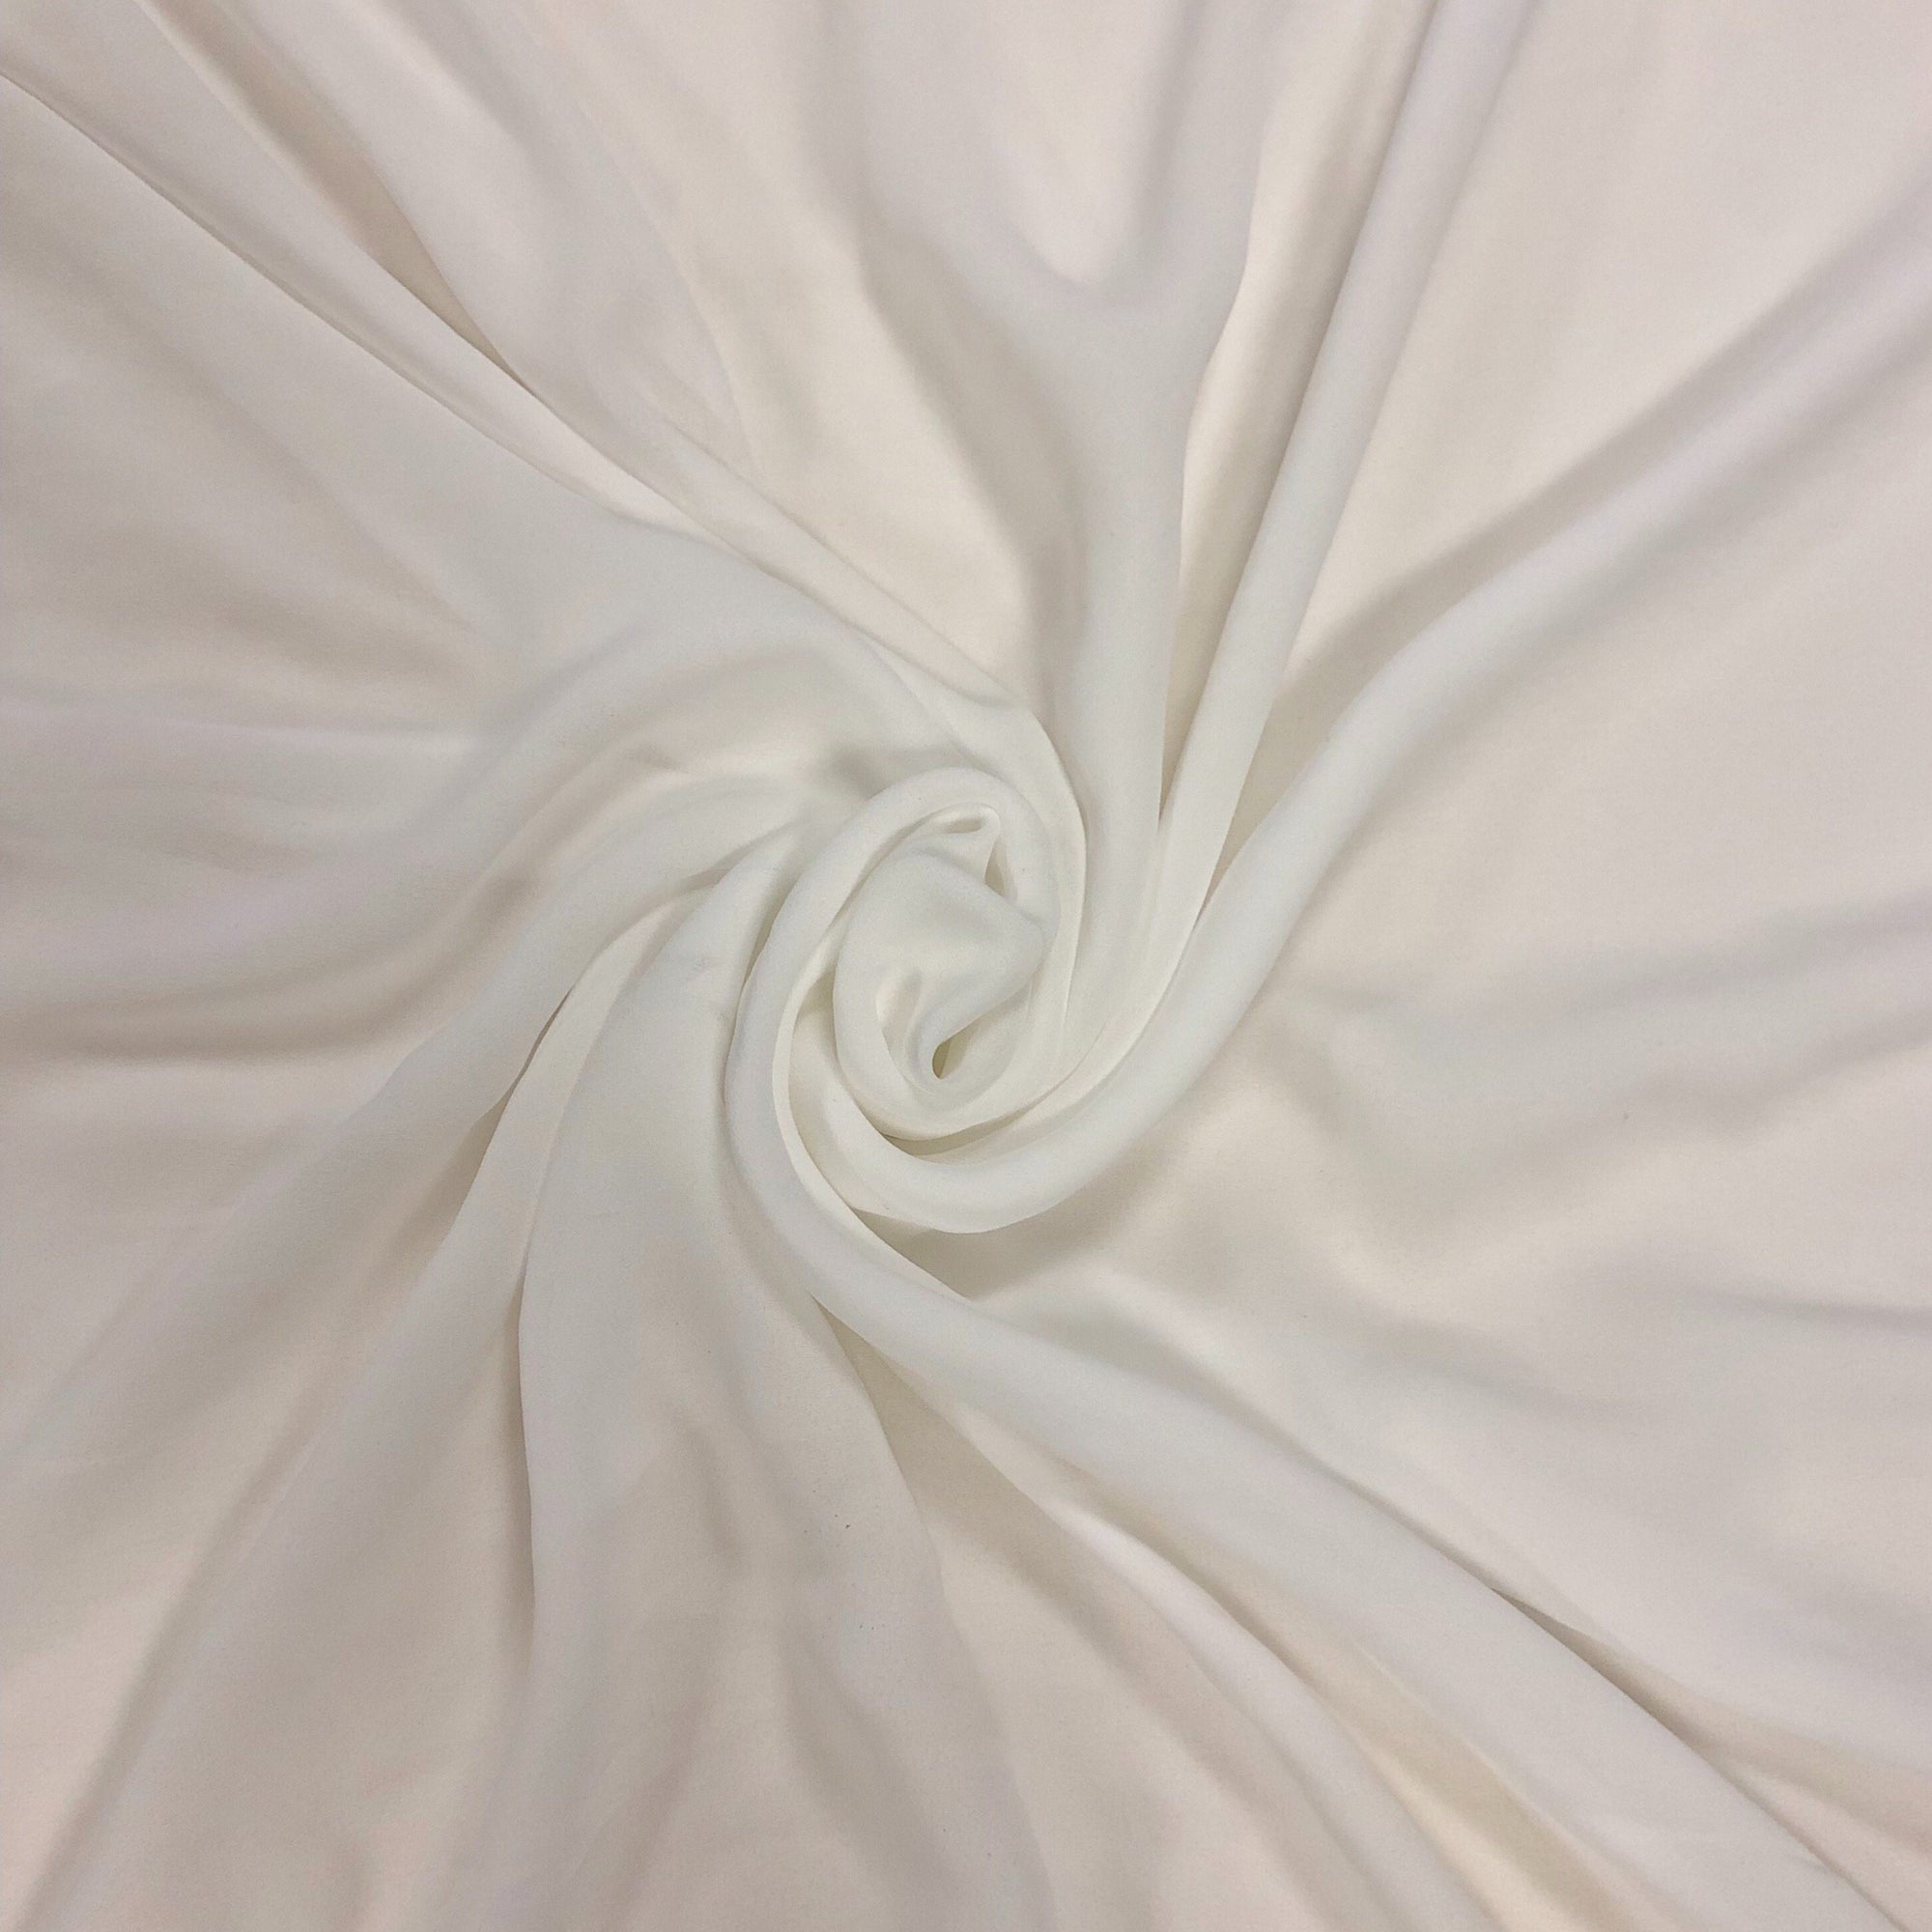 Special Offer - Ivory Shades Chiffon/Georgette Fabric